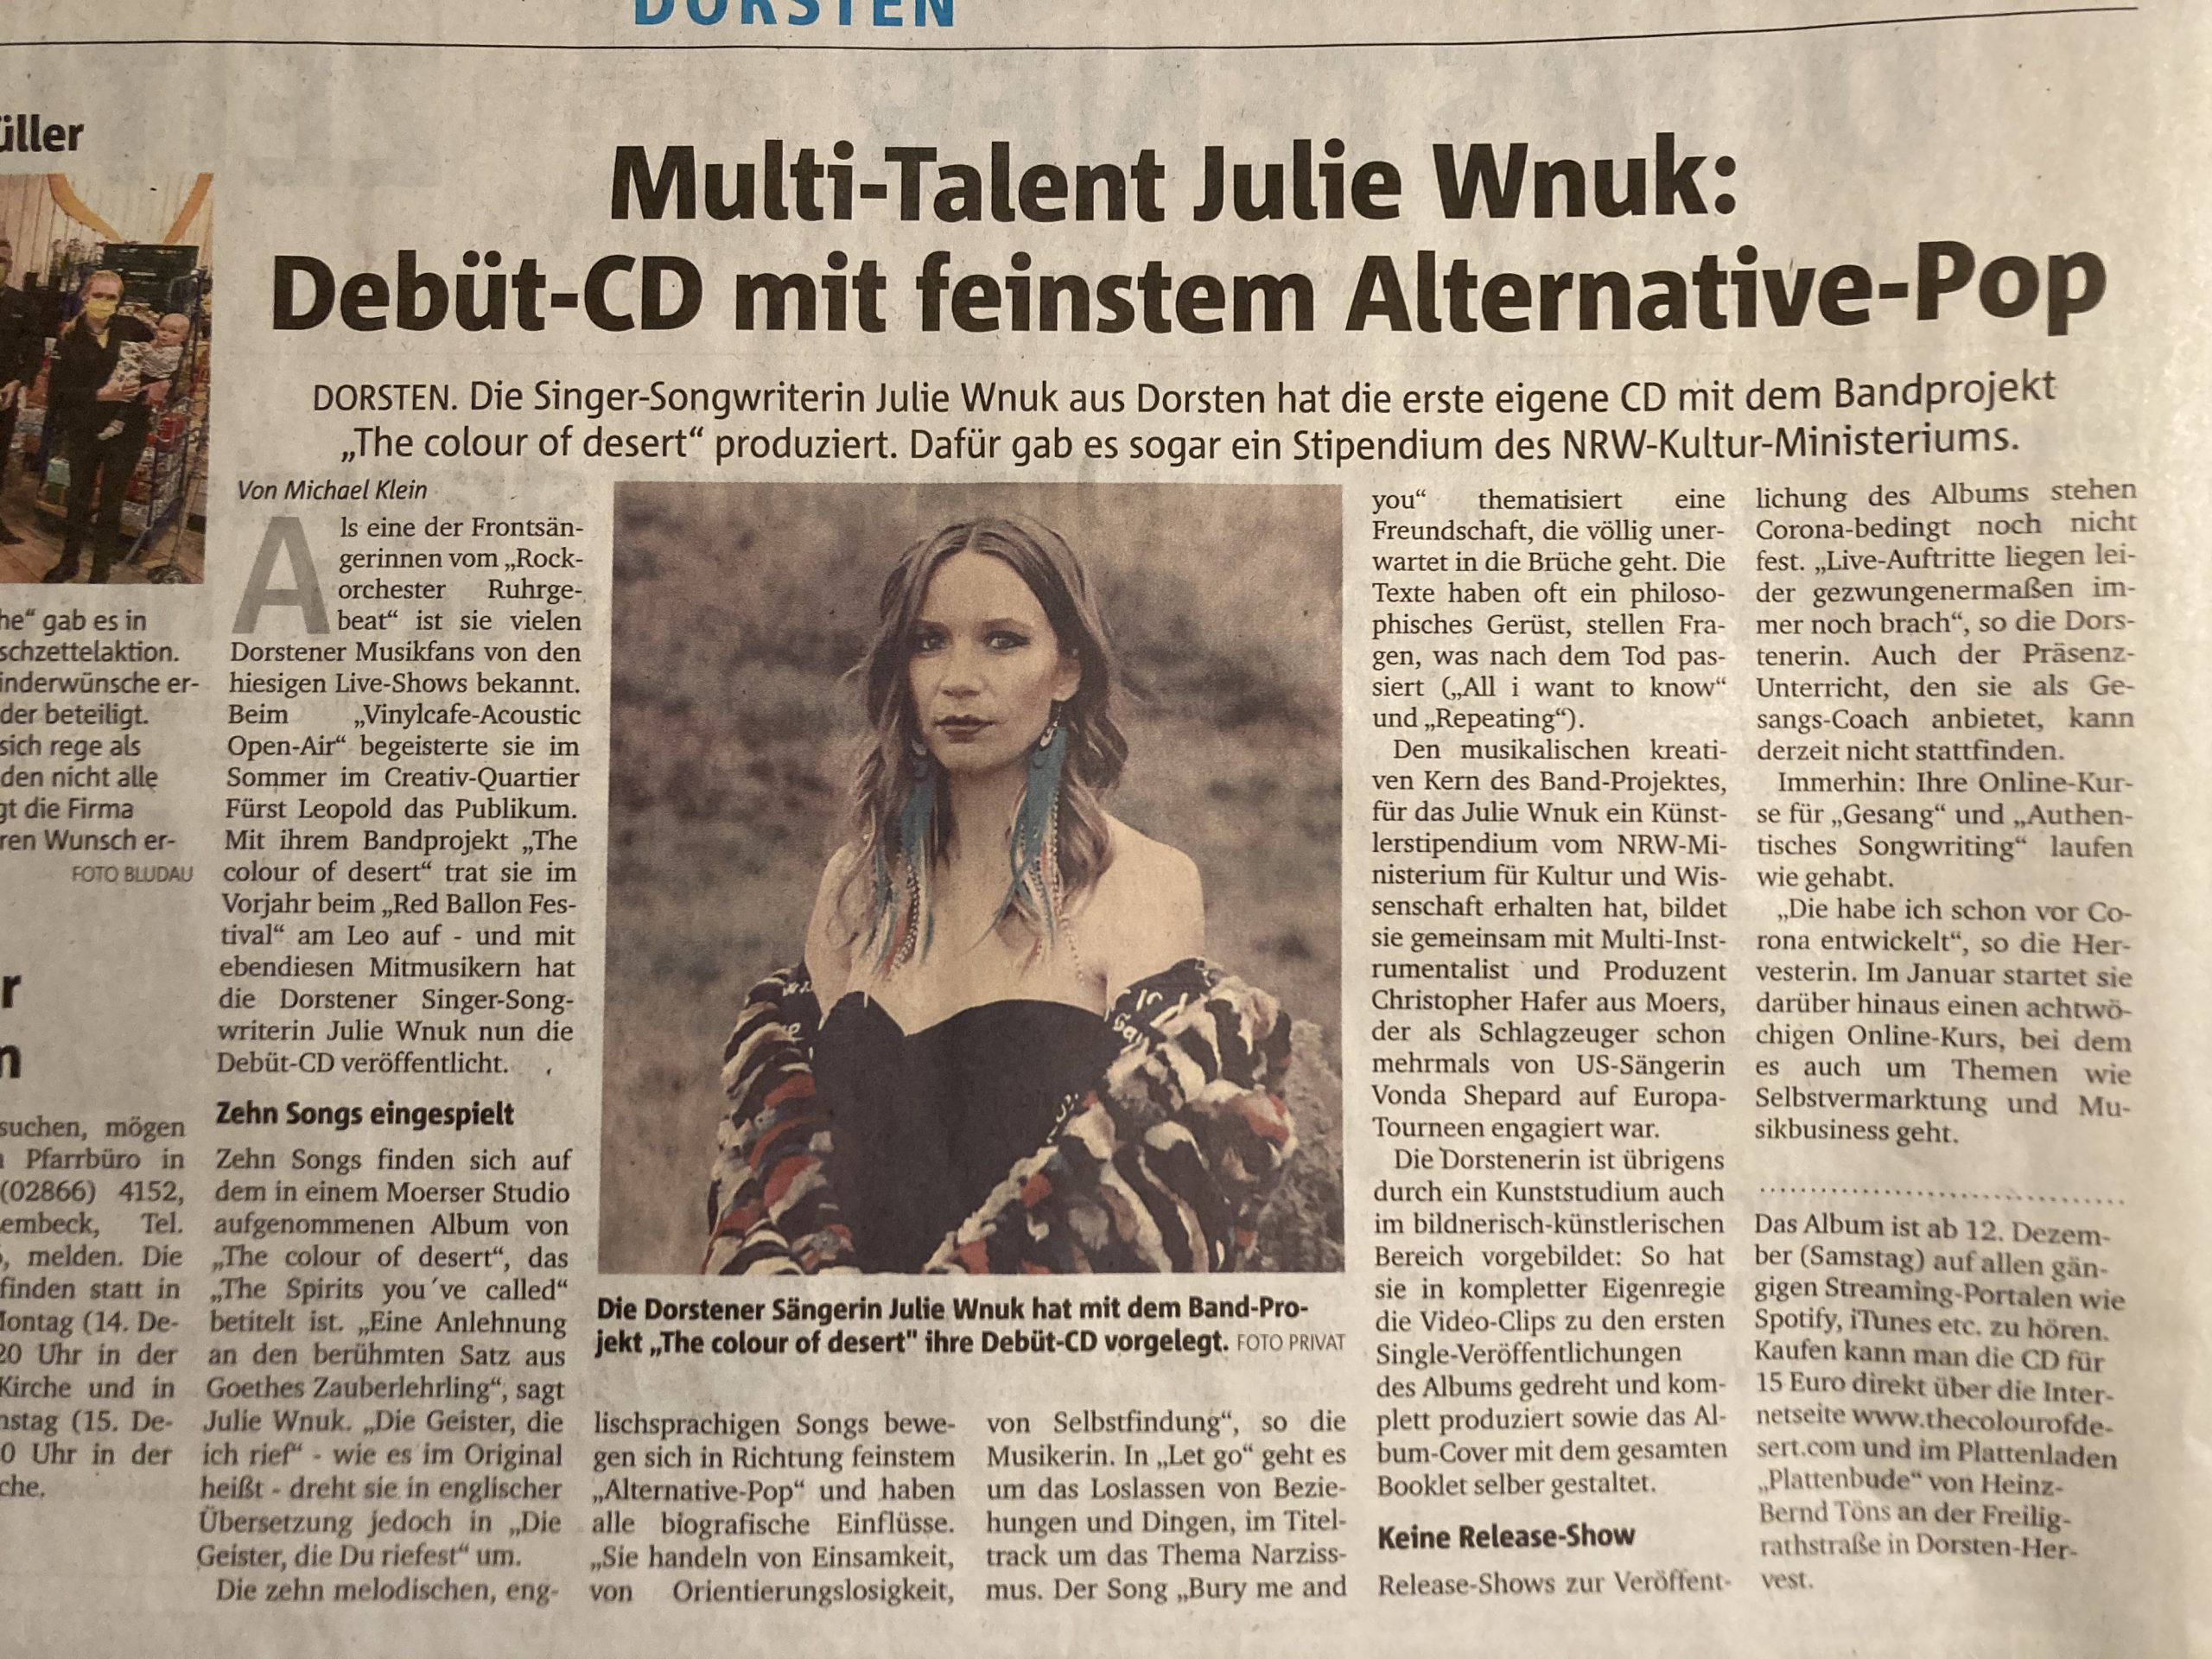 Multitalent Debüt CD feinster Alternative Pop